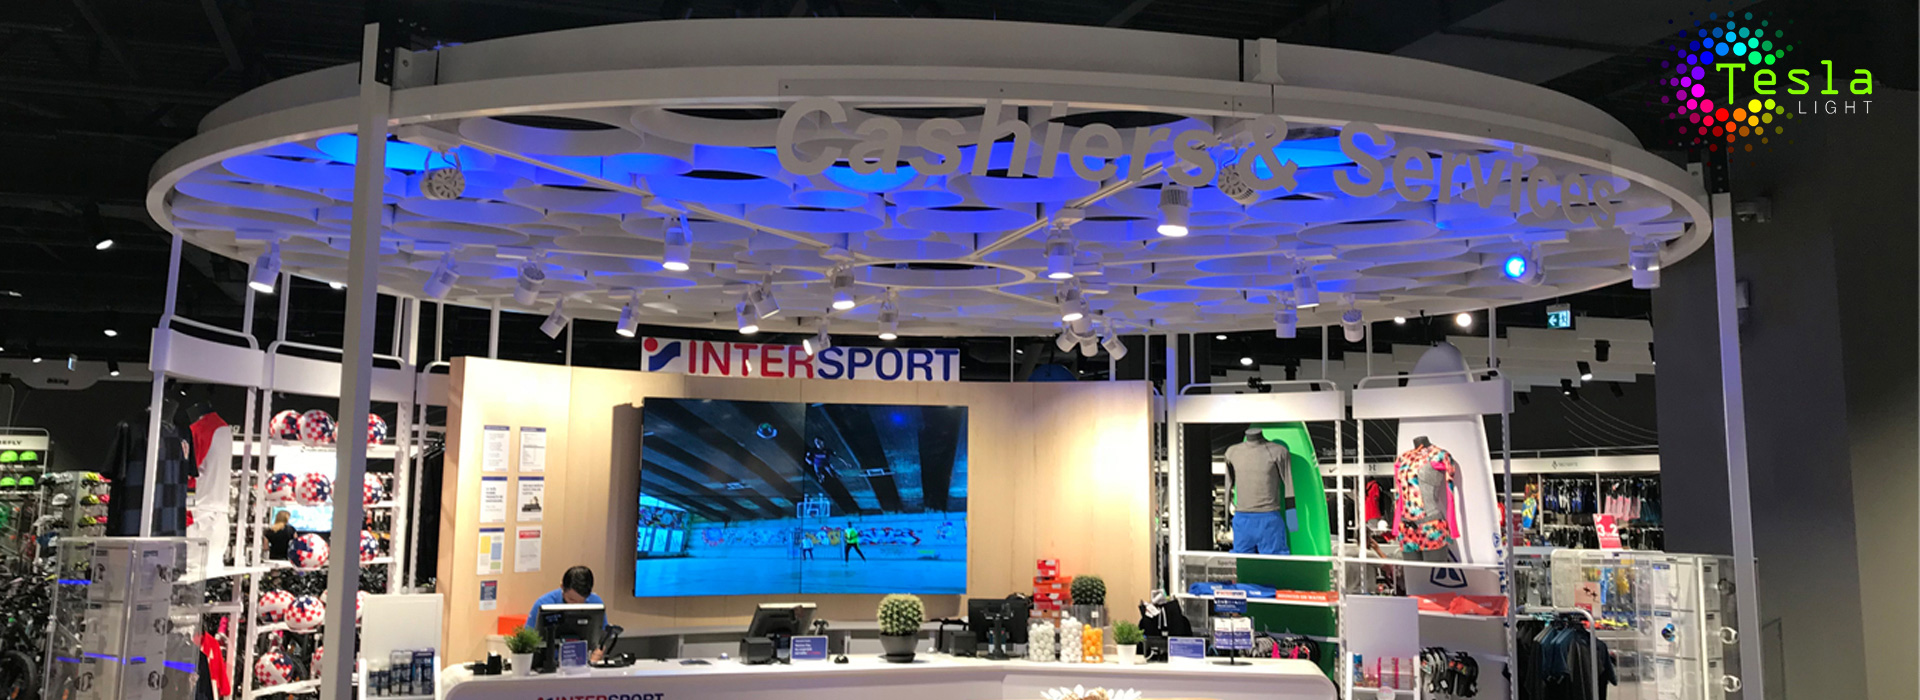 Intersport Arena Zagreb Flux Technology